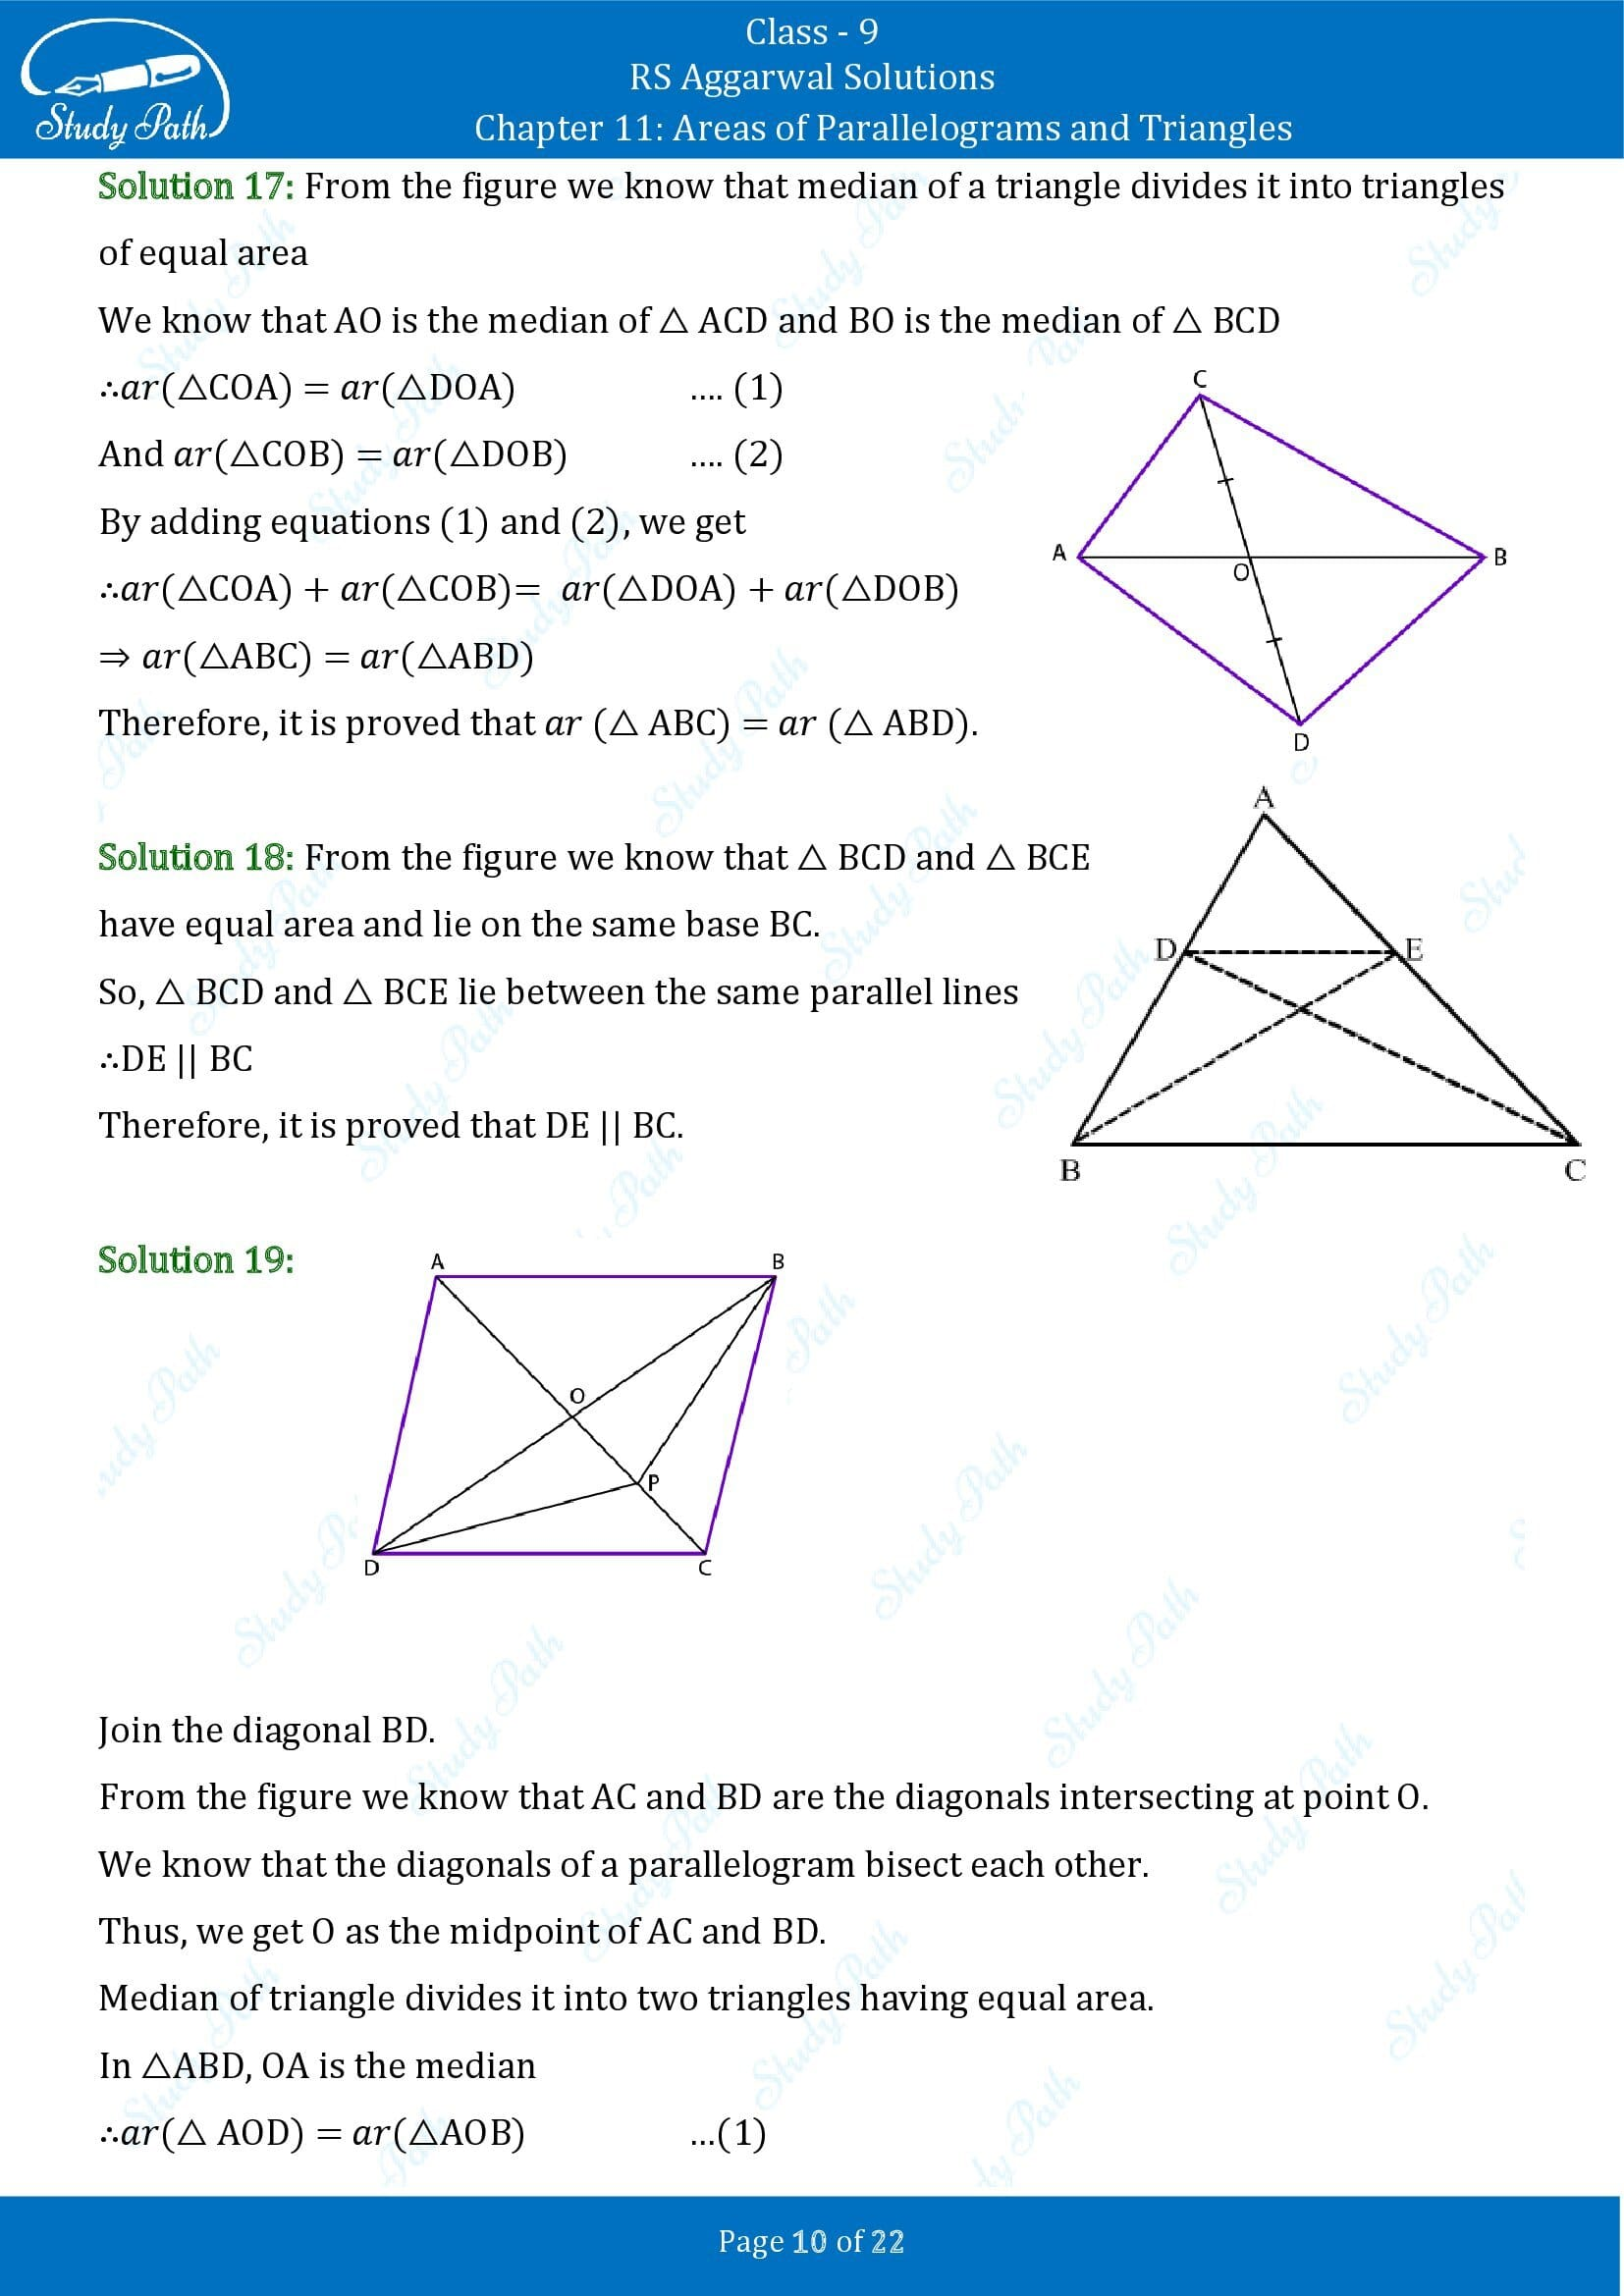 RS Aggarwal Solutions Class 9 Chapter 11 Areas of Parallelograms and Triangles Exercise 11 00010